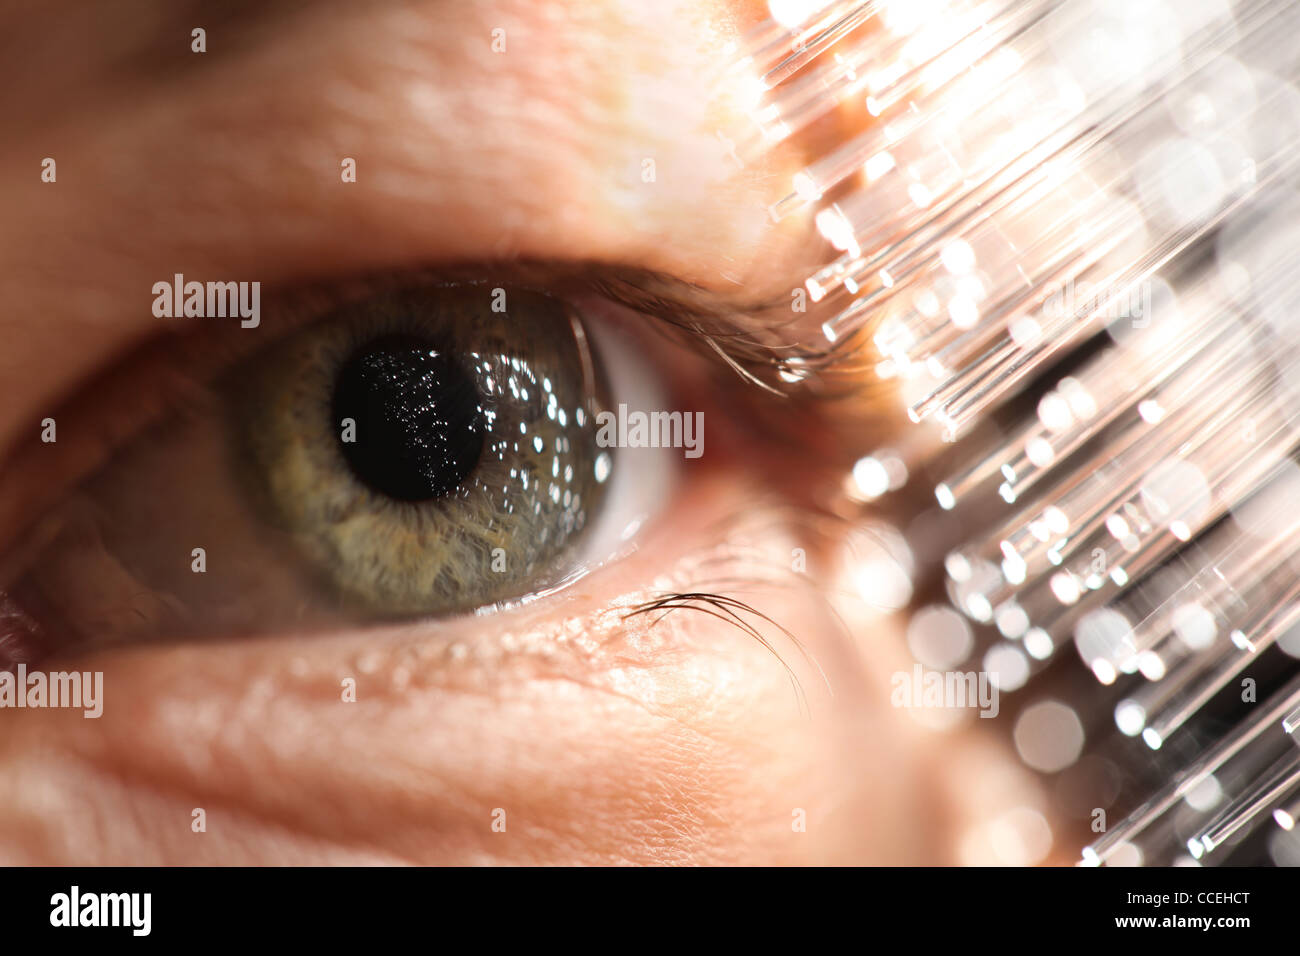 Fiber optics amd eye technology - Stock Image